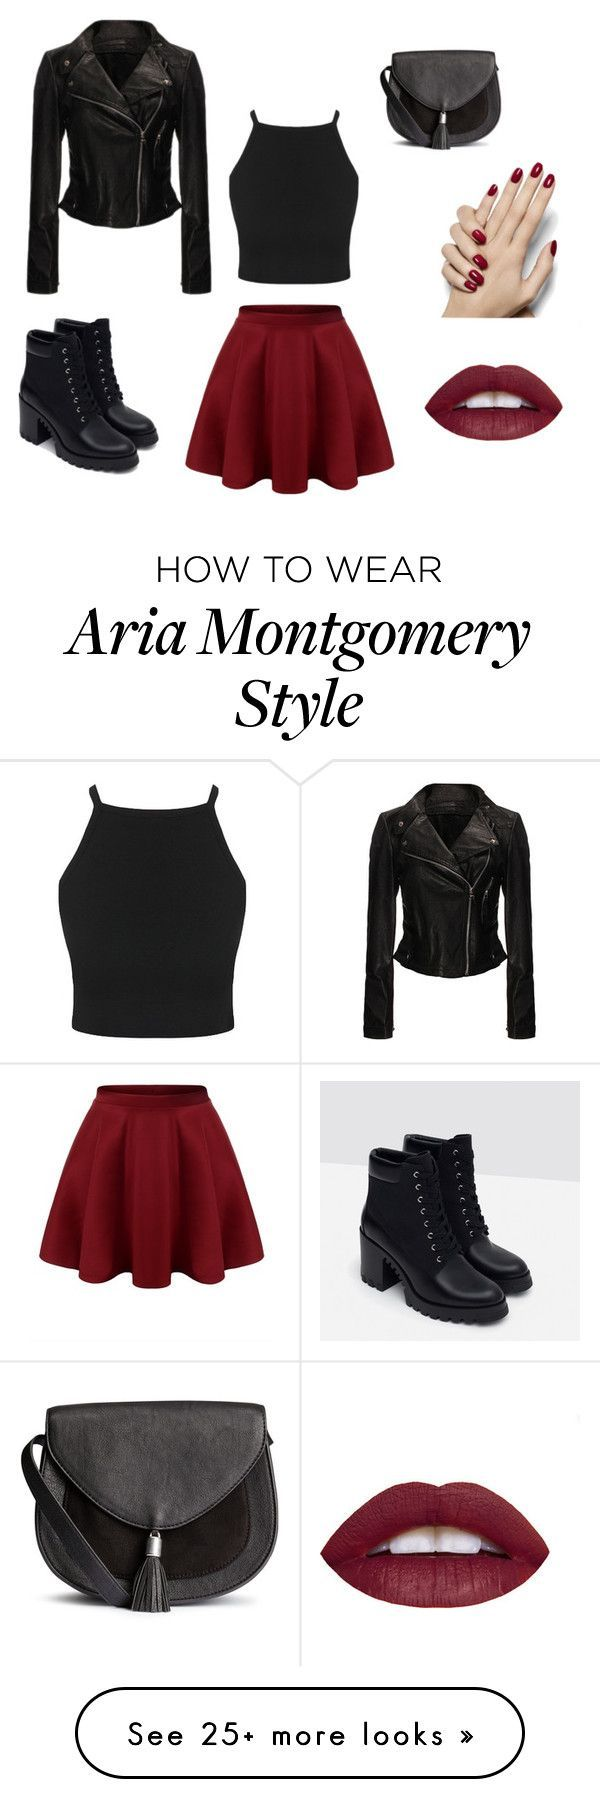 """Aria Montgomery"" by grace1215 on Polyvore featuri…"